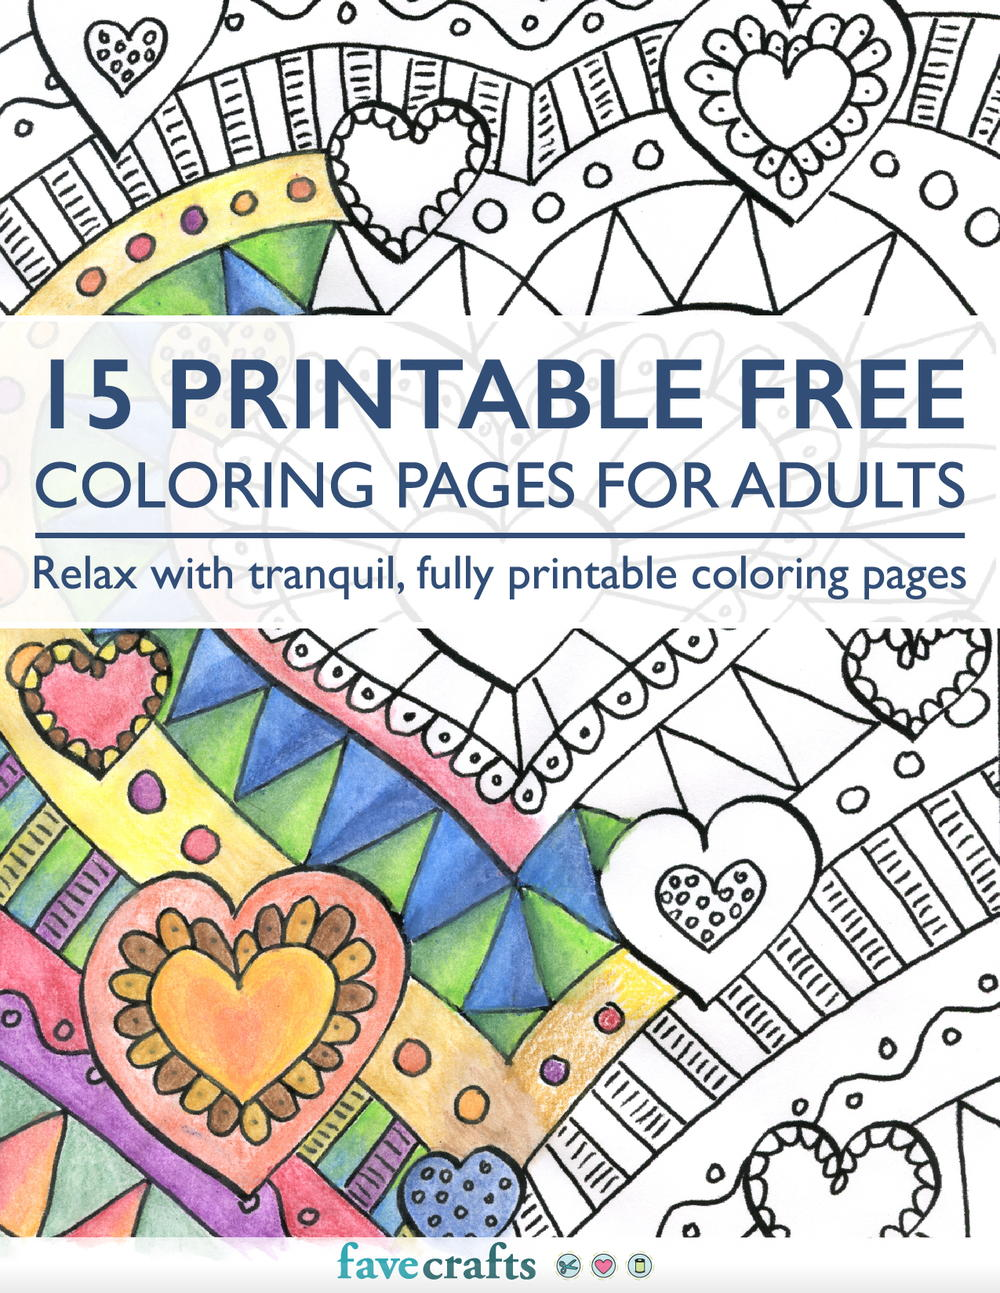 15 Printable Free Coloring Pages for Adults [PDF ... | free printable colouring pages for adults